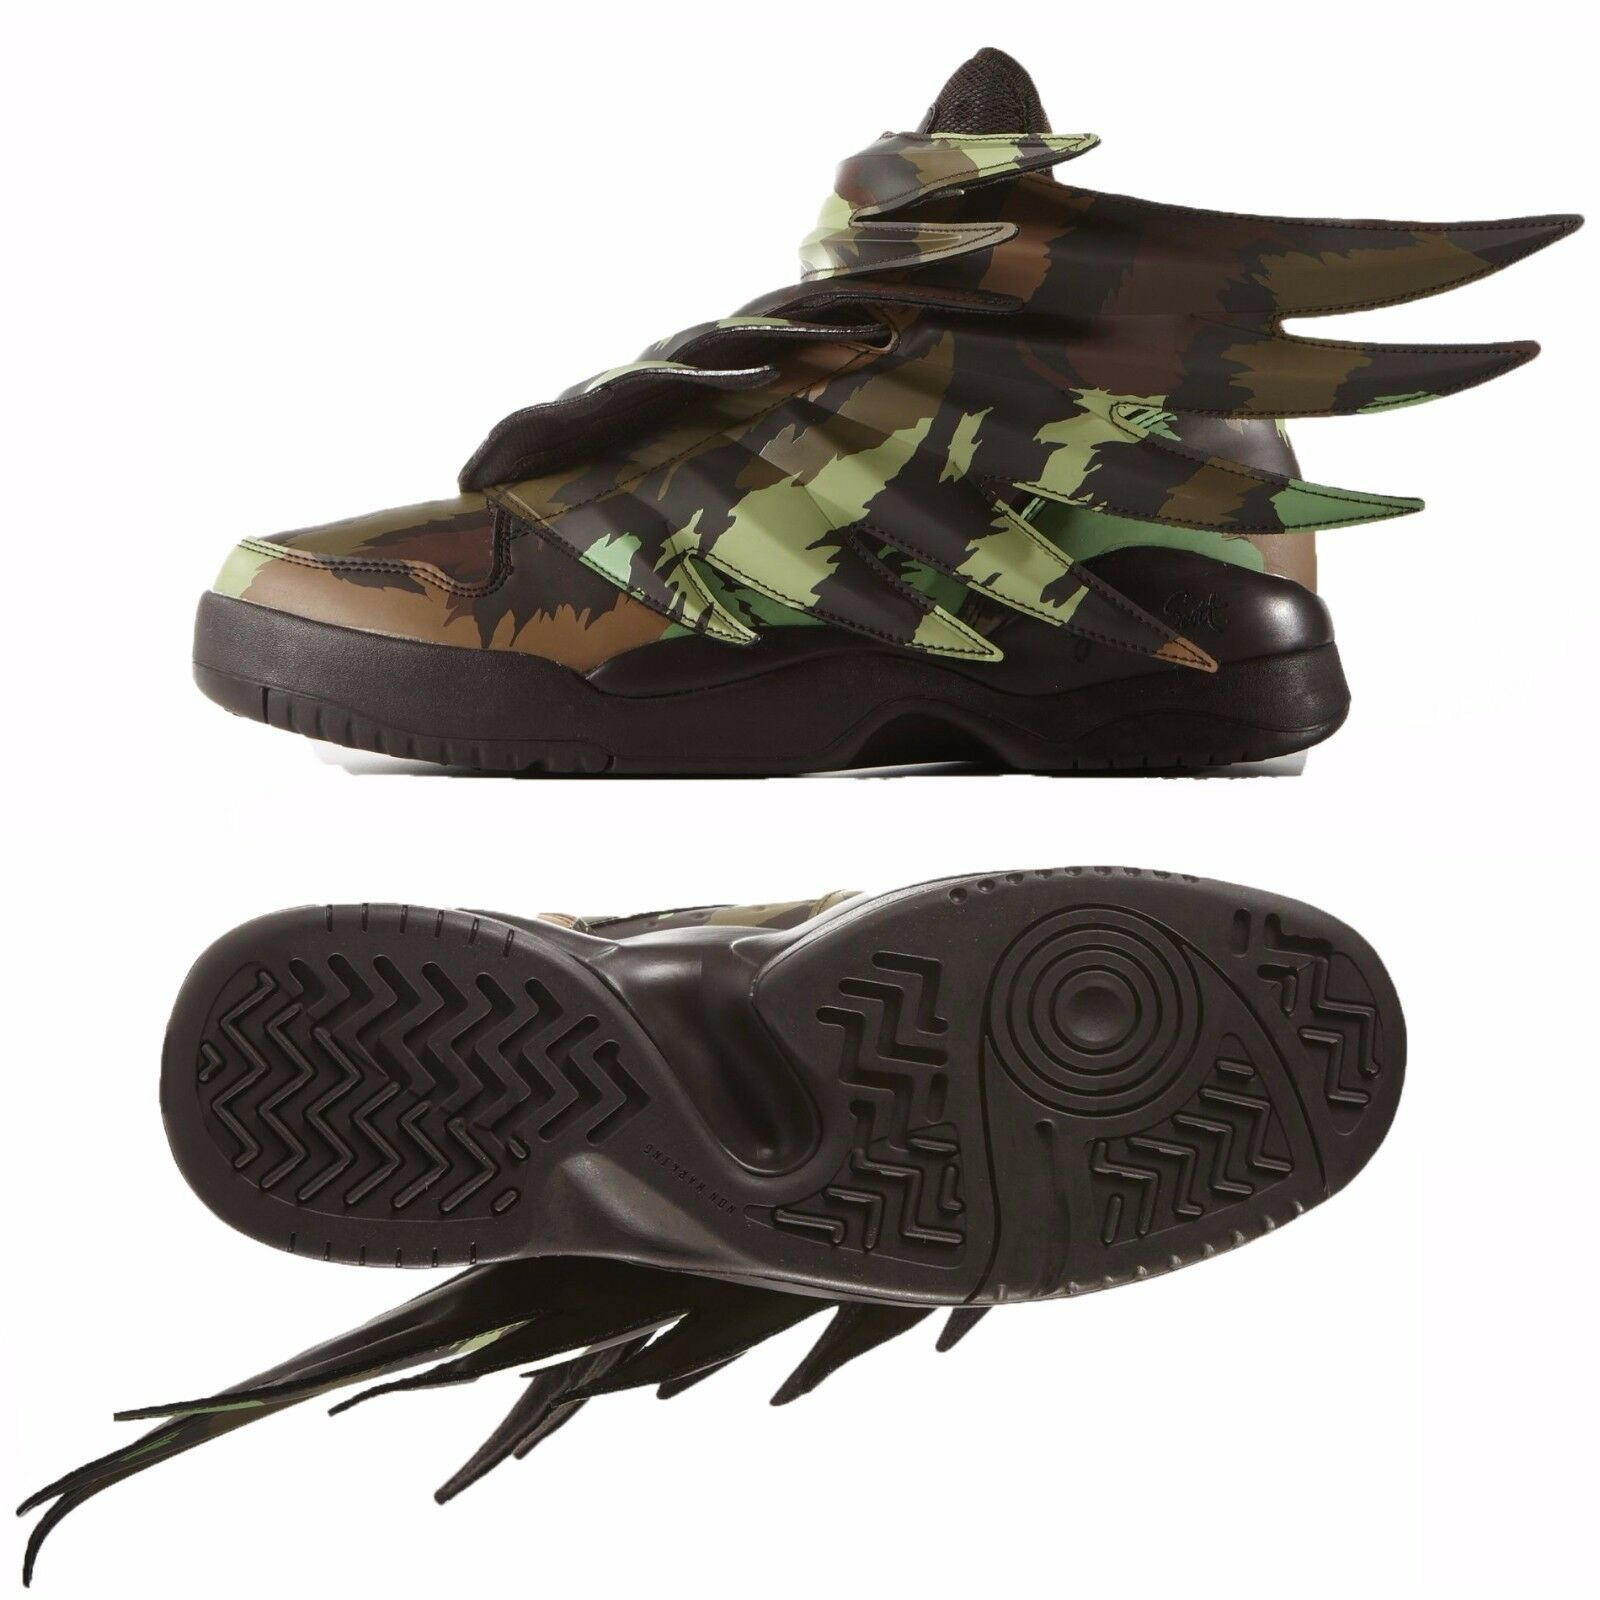 Adidas ObyO JS Jeremy Scott Wings 3.0 Print S77804 Sauvage Batman Camo Men Shoes